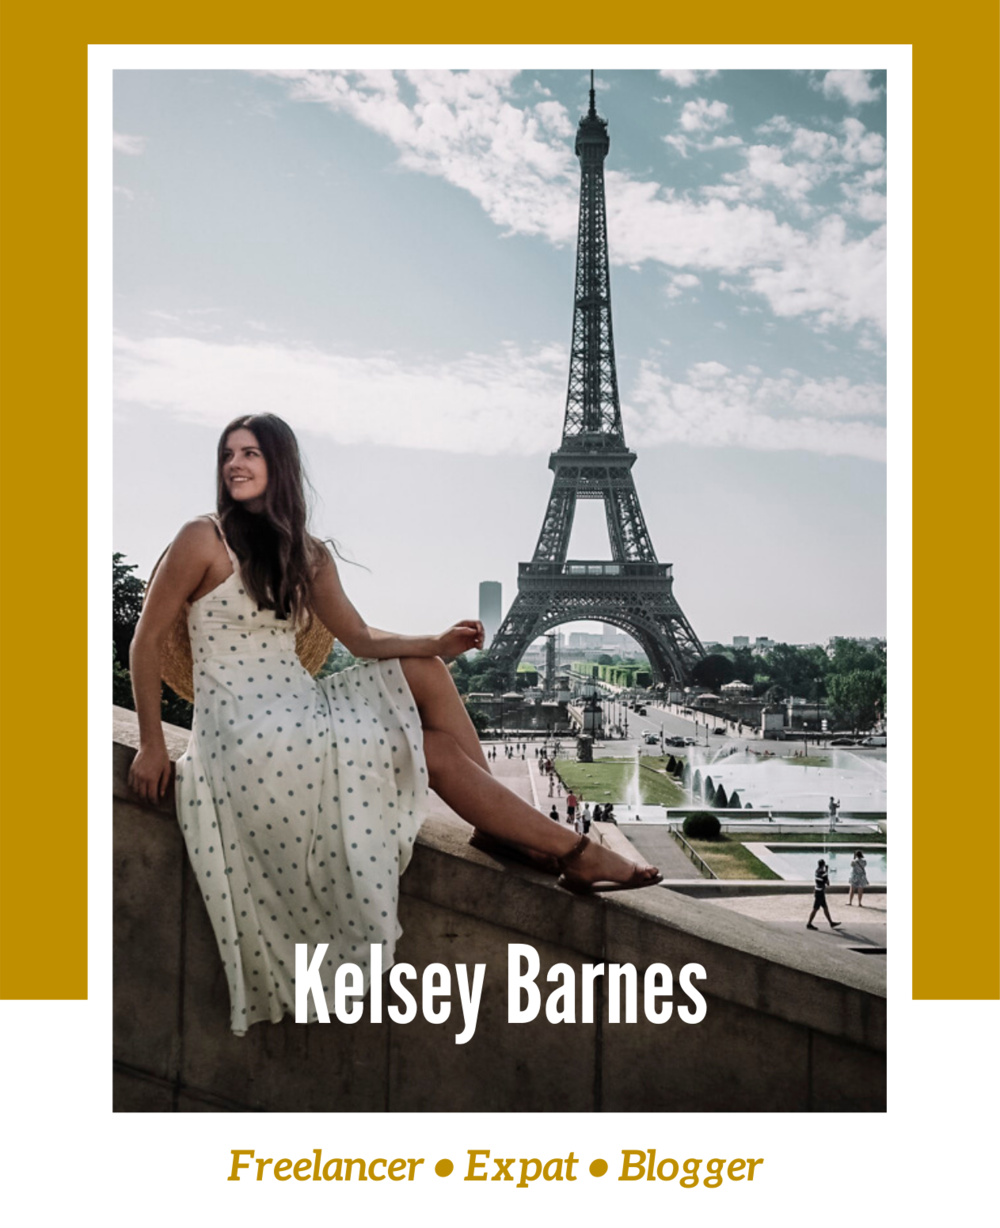 Rachel Off Duty: Stories Beyond the 9-to-5: How These Women Travel More While Maintaining Their Jobs - Kelsey Barnes